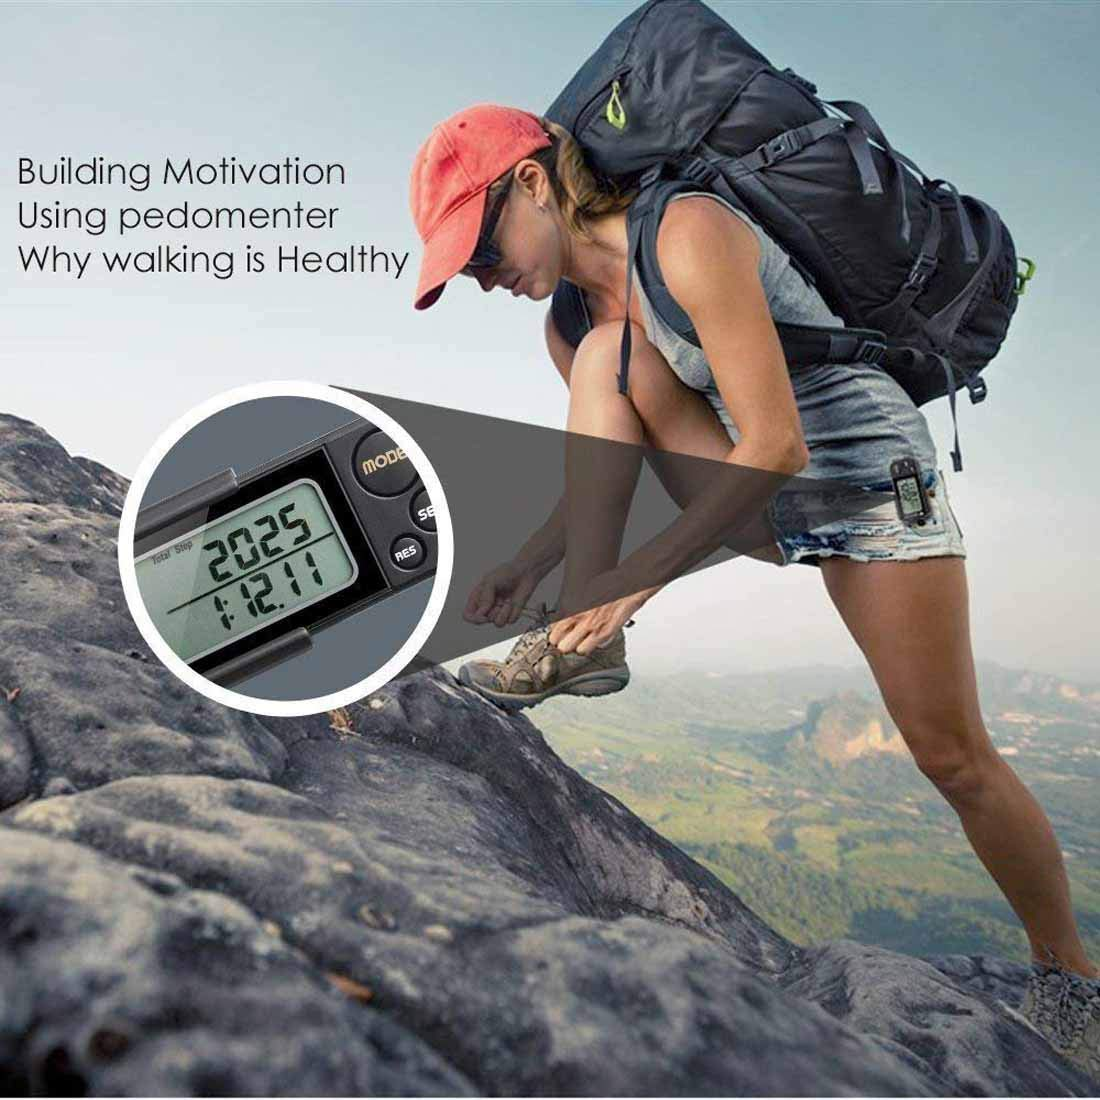 MAYMOC 3D Pedometer and Step Tracker for Walking Steps Miles//Km Accurate Portable Clip on Sports Fitness Daily Target Monitor Exercise Distance Calories Counter with Lanyard and 30 Days Memory Black